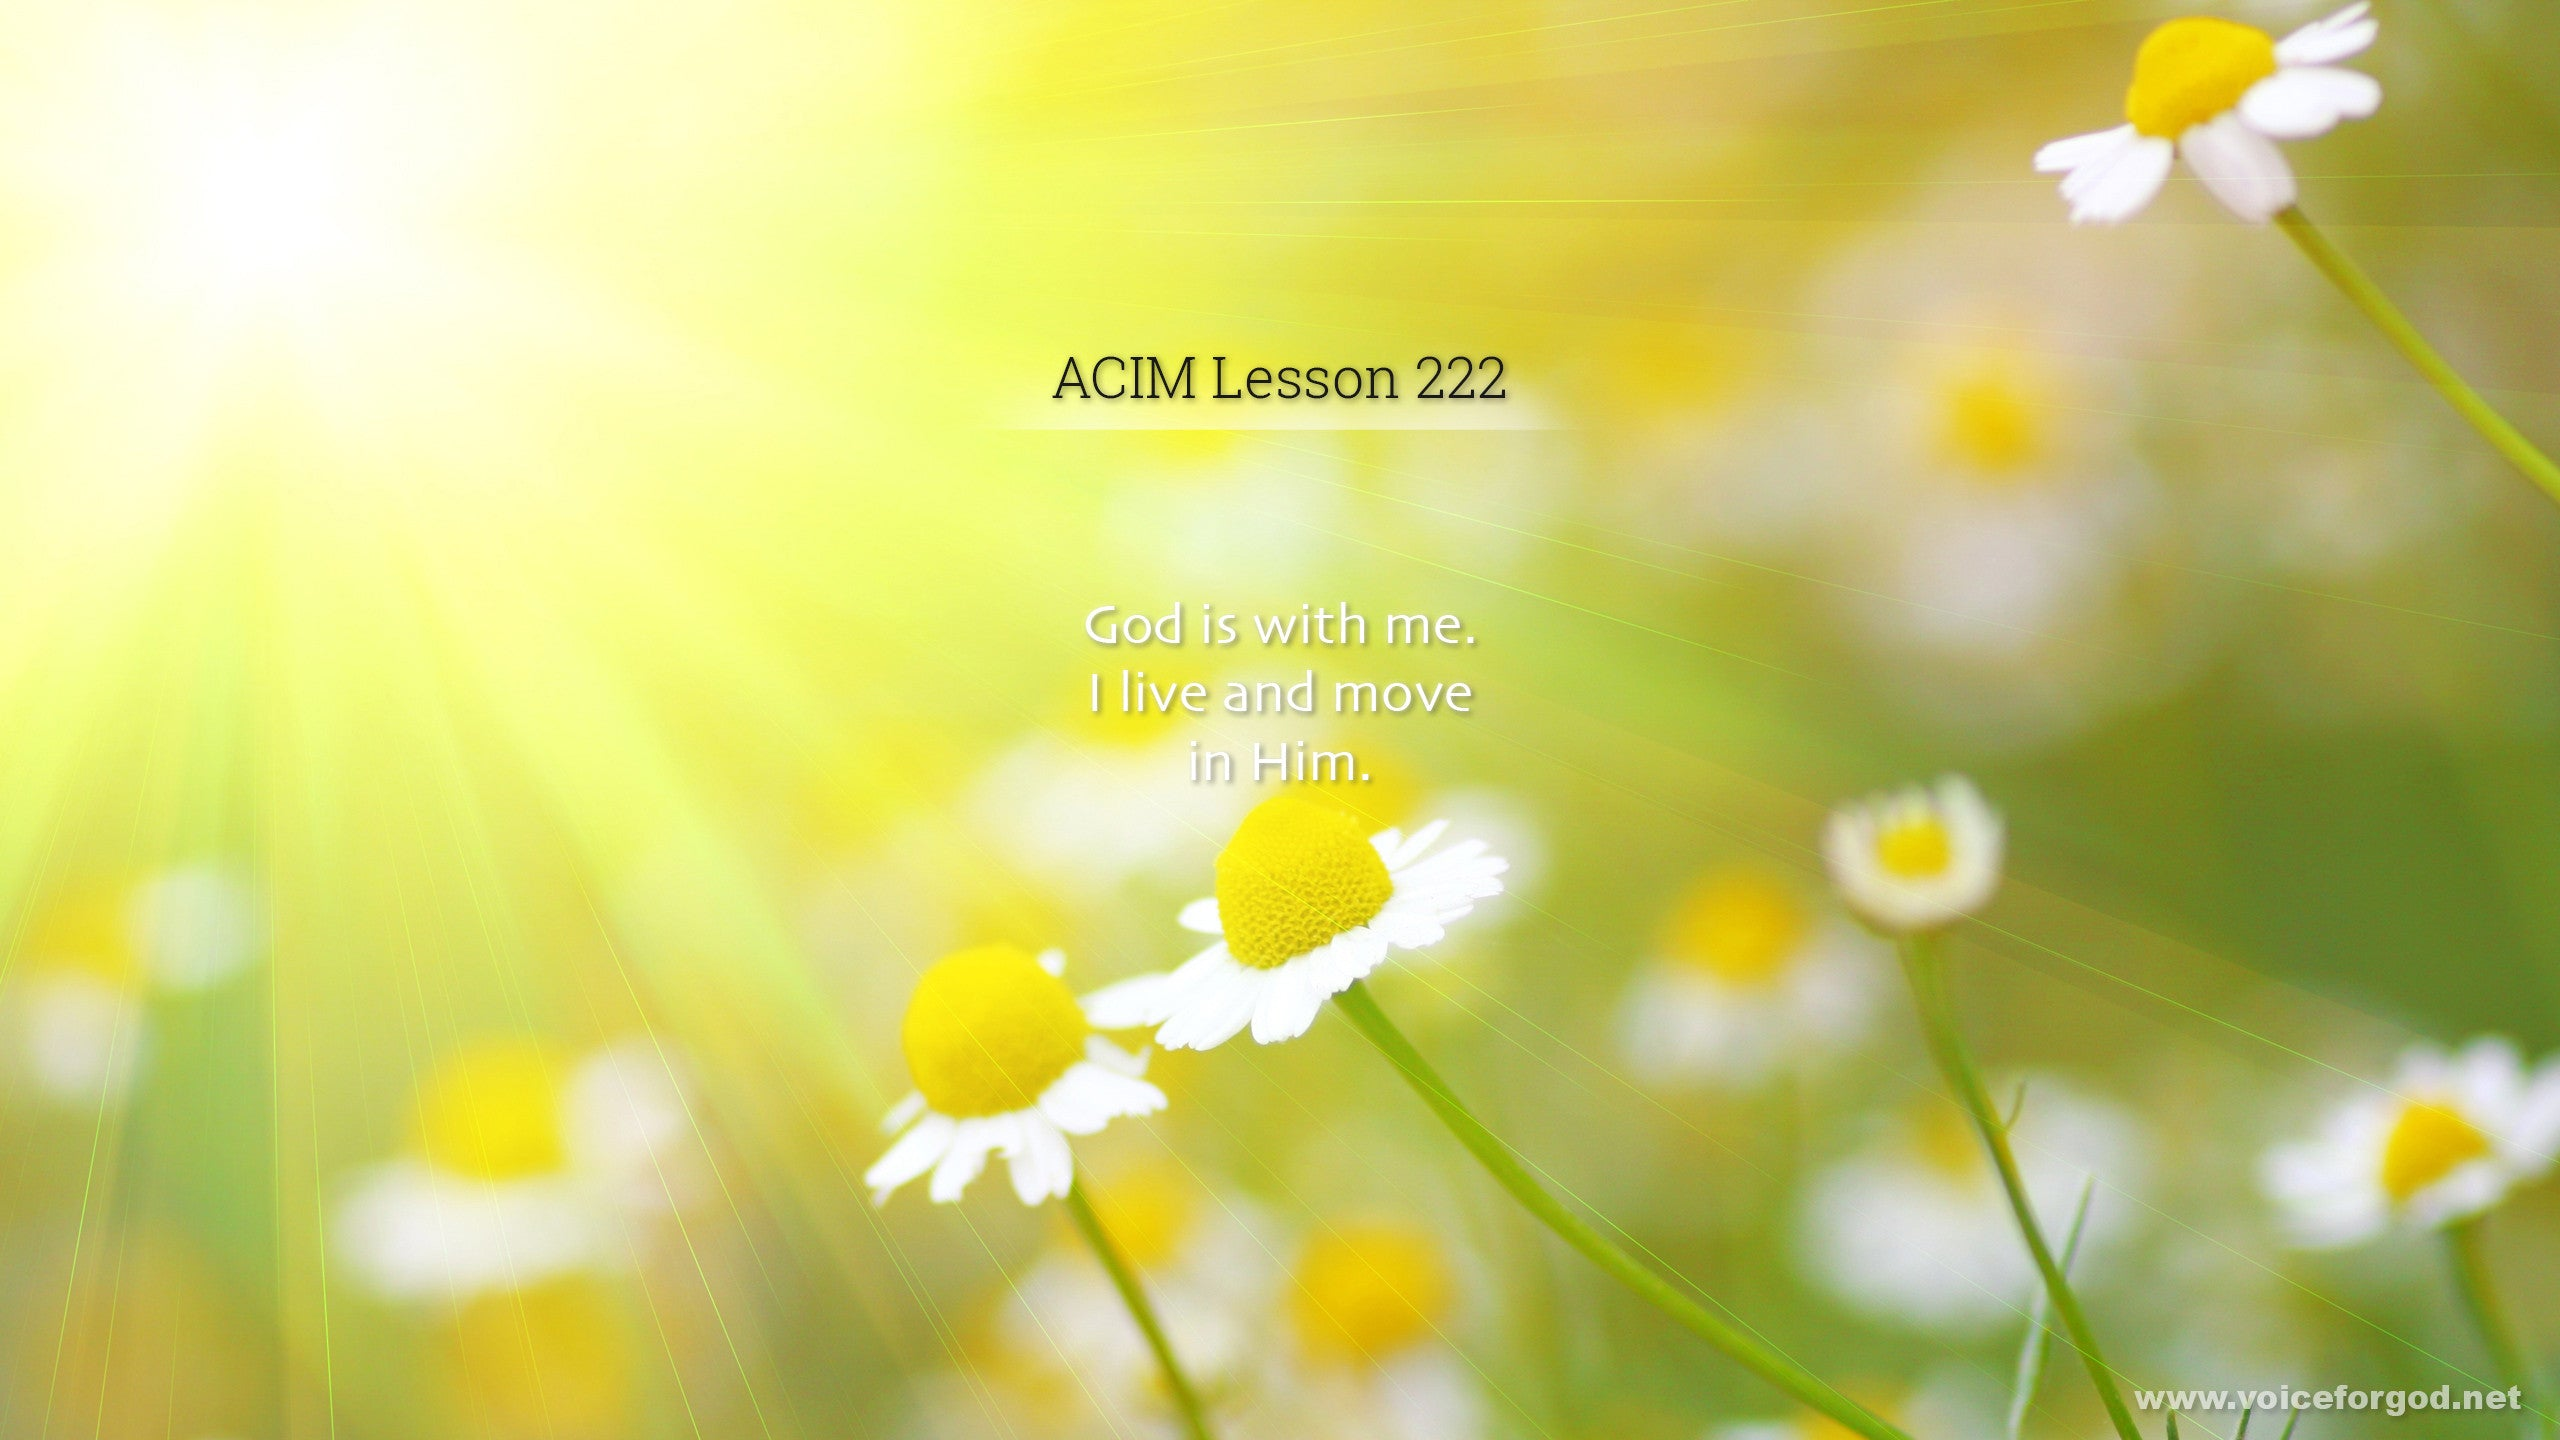 ACIM Lesson 222 - A Course in Miracles Workbook Lesson 222